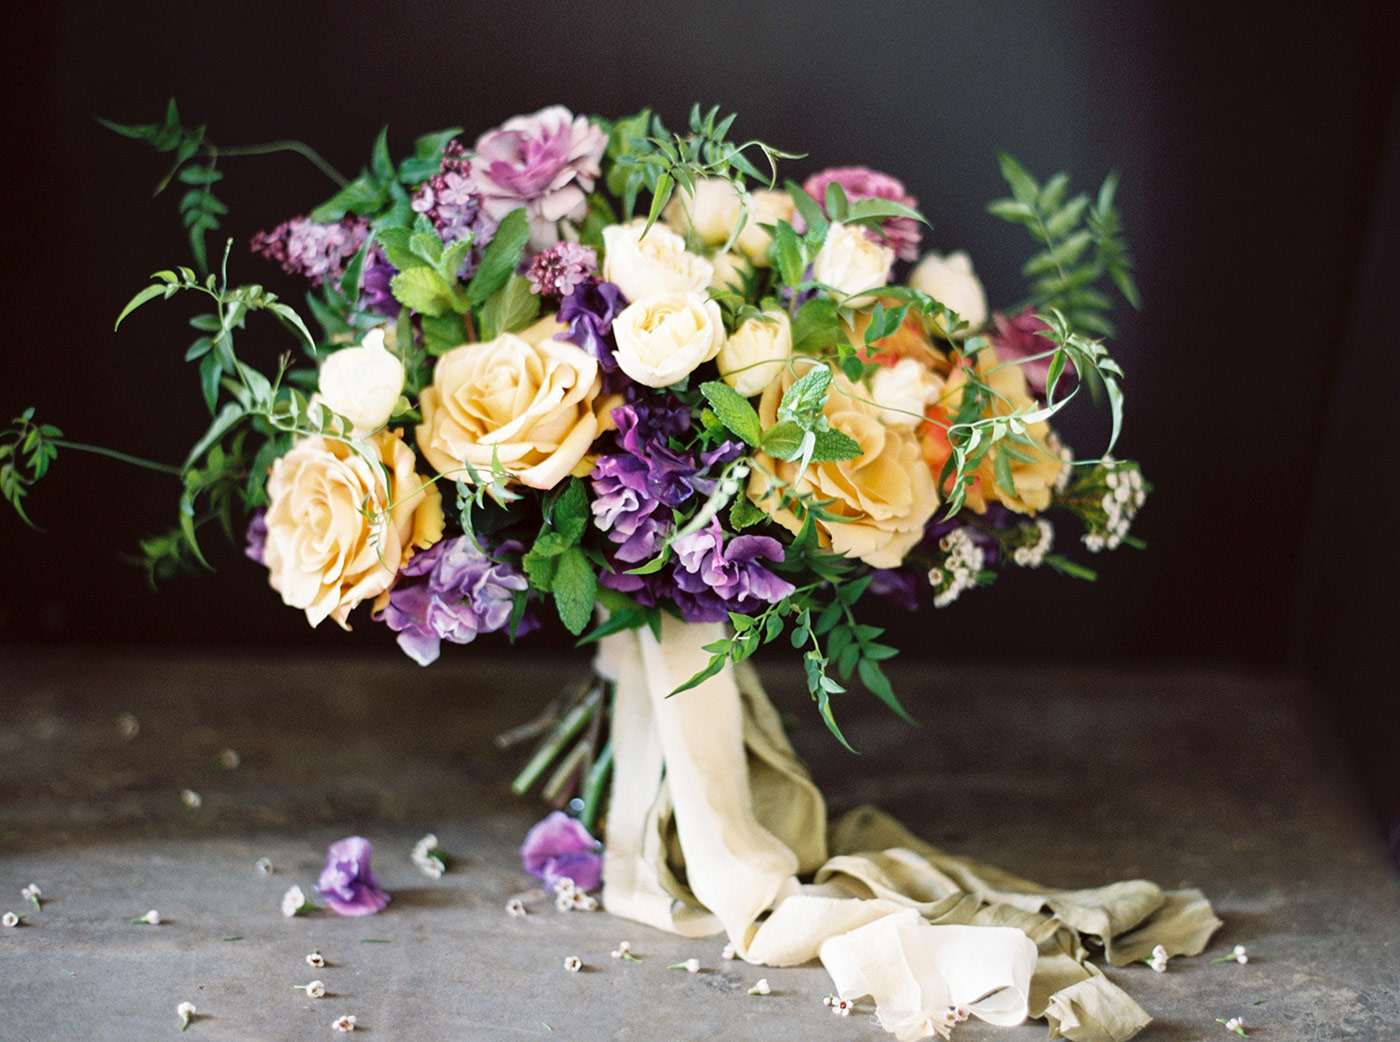 Wilder Floral Co. Bridal Bouquet photographed by Ashley Ludaescher